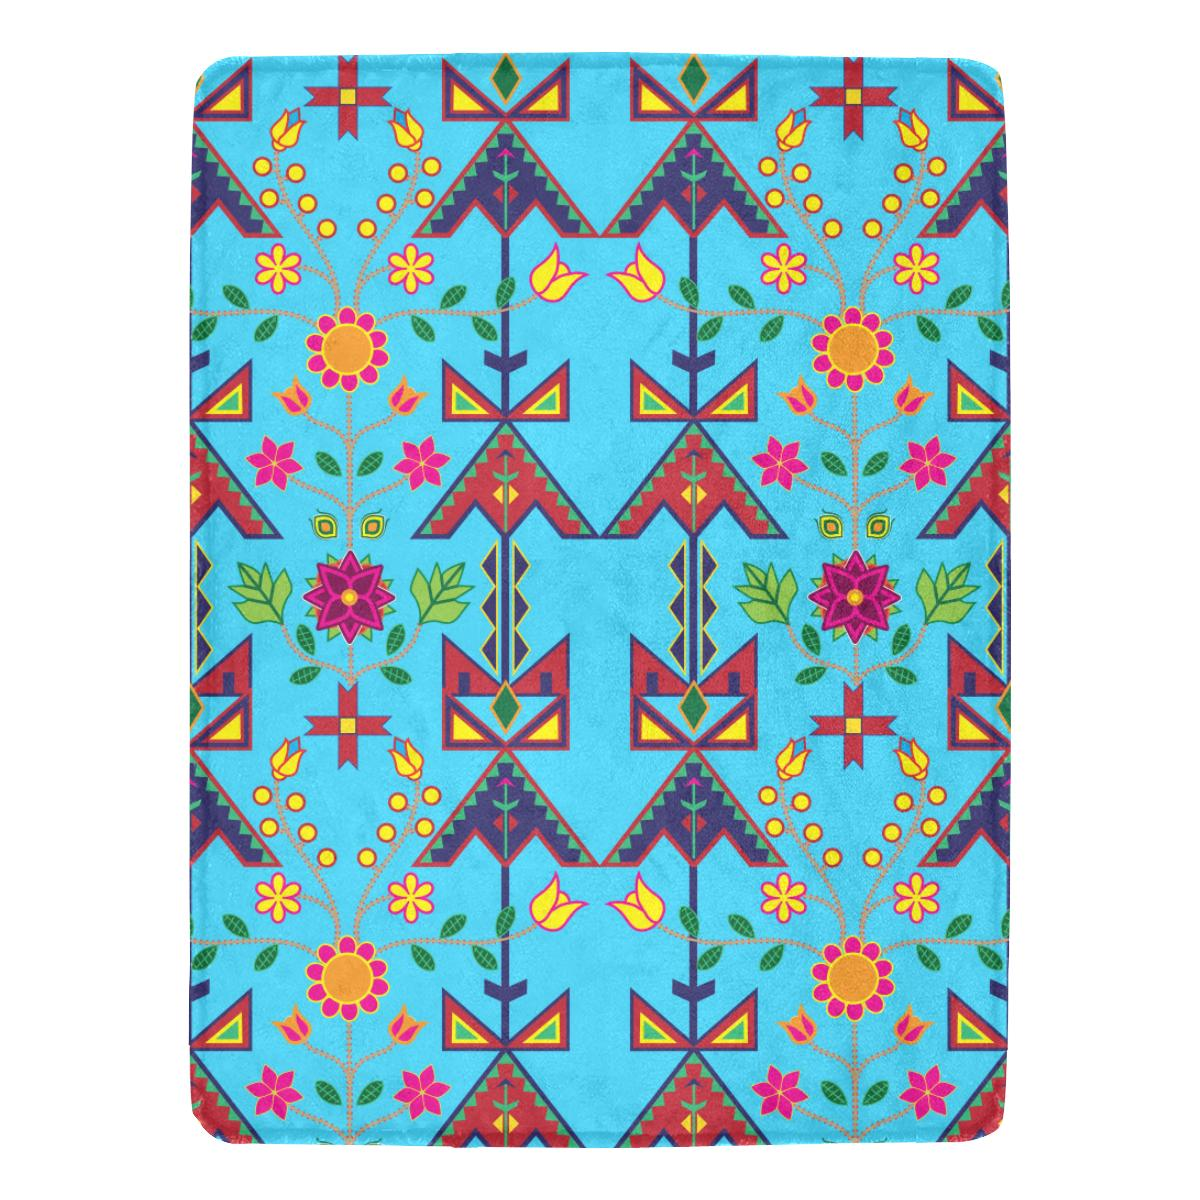 Geometric Floral Spring - Sky Blue Ultra-Soft Micro Fleece Blanket 60